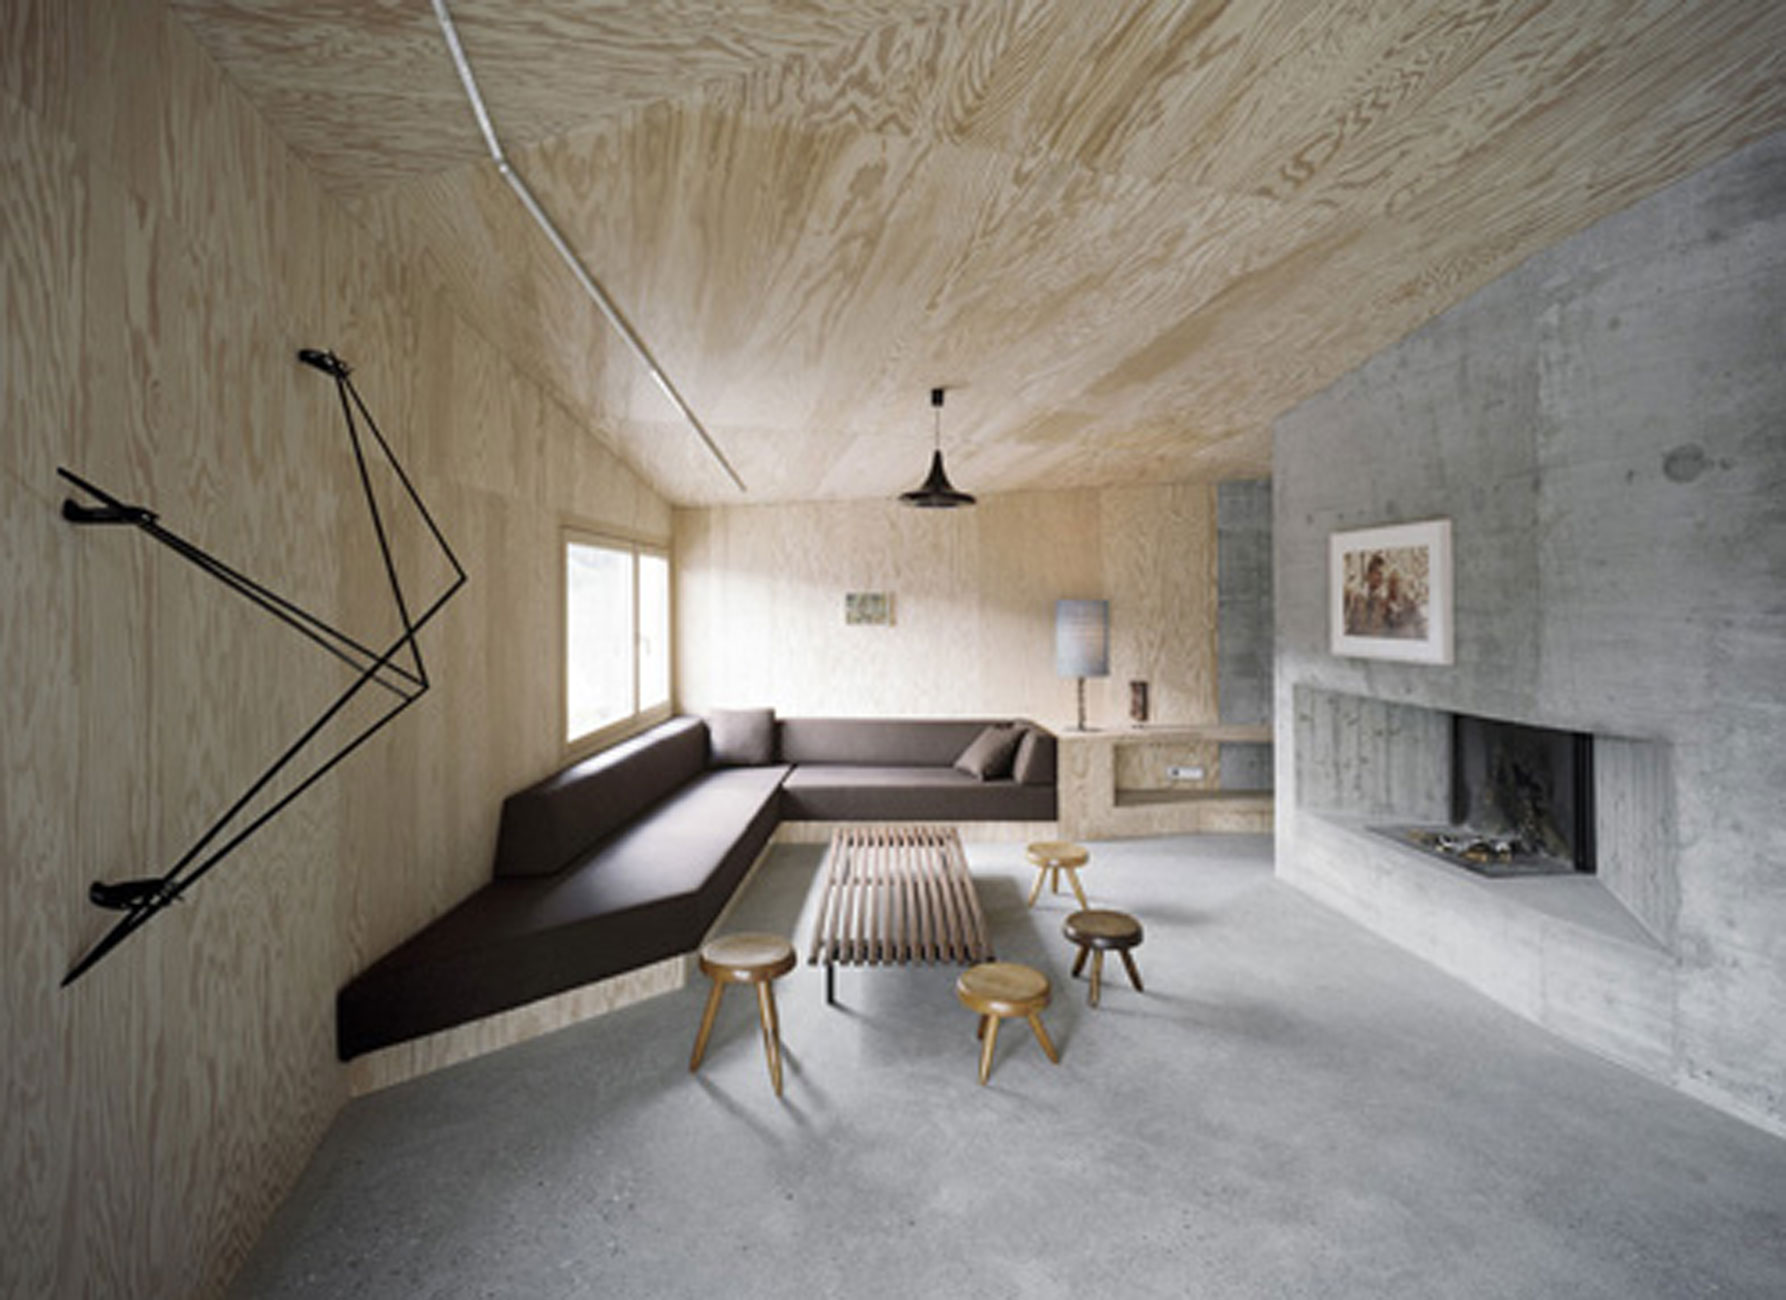 Solid Concrete House Architecture and Minimalist Interior ...